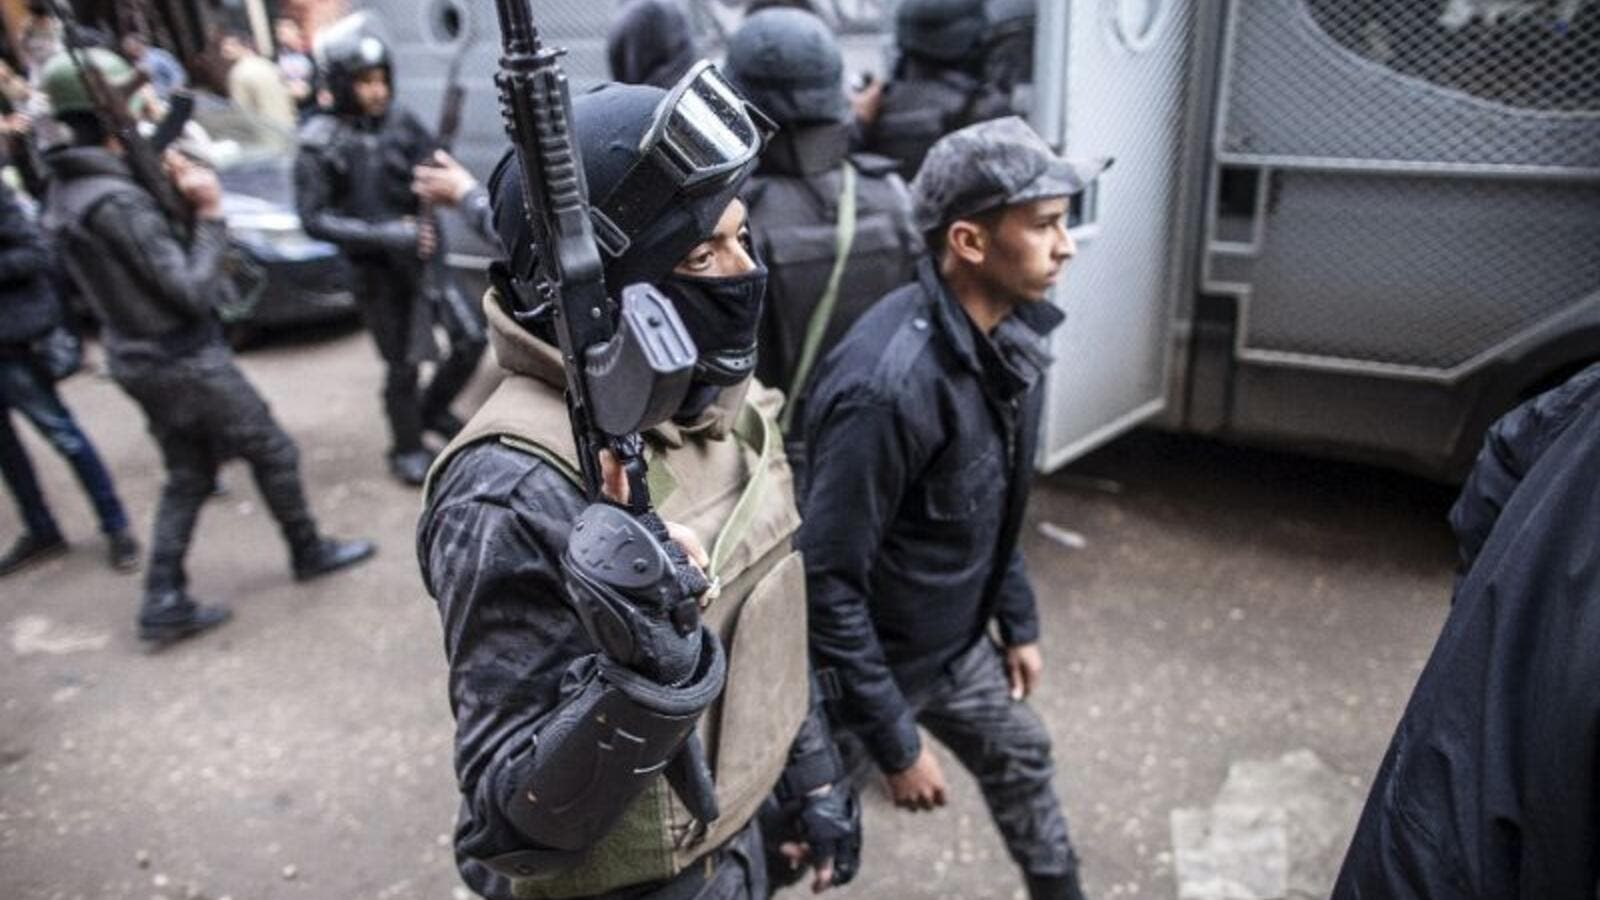 Egypt has tightened security after hundreds of its security forces have been killed in a spate of jihadist attacks since 2013 (AFP /Mahmoud Khaled)